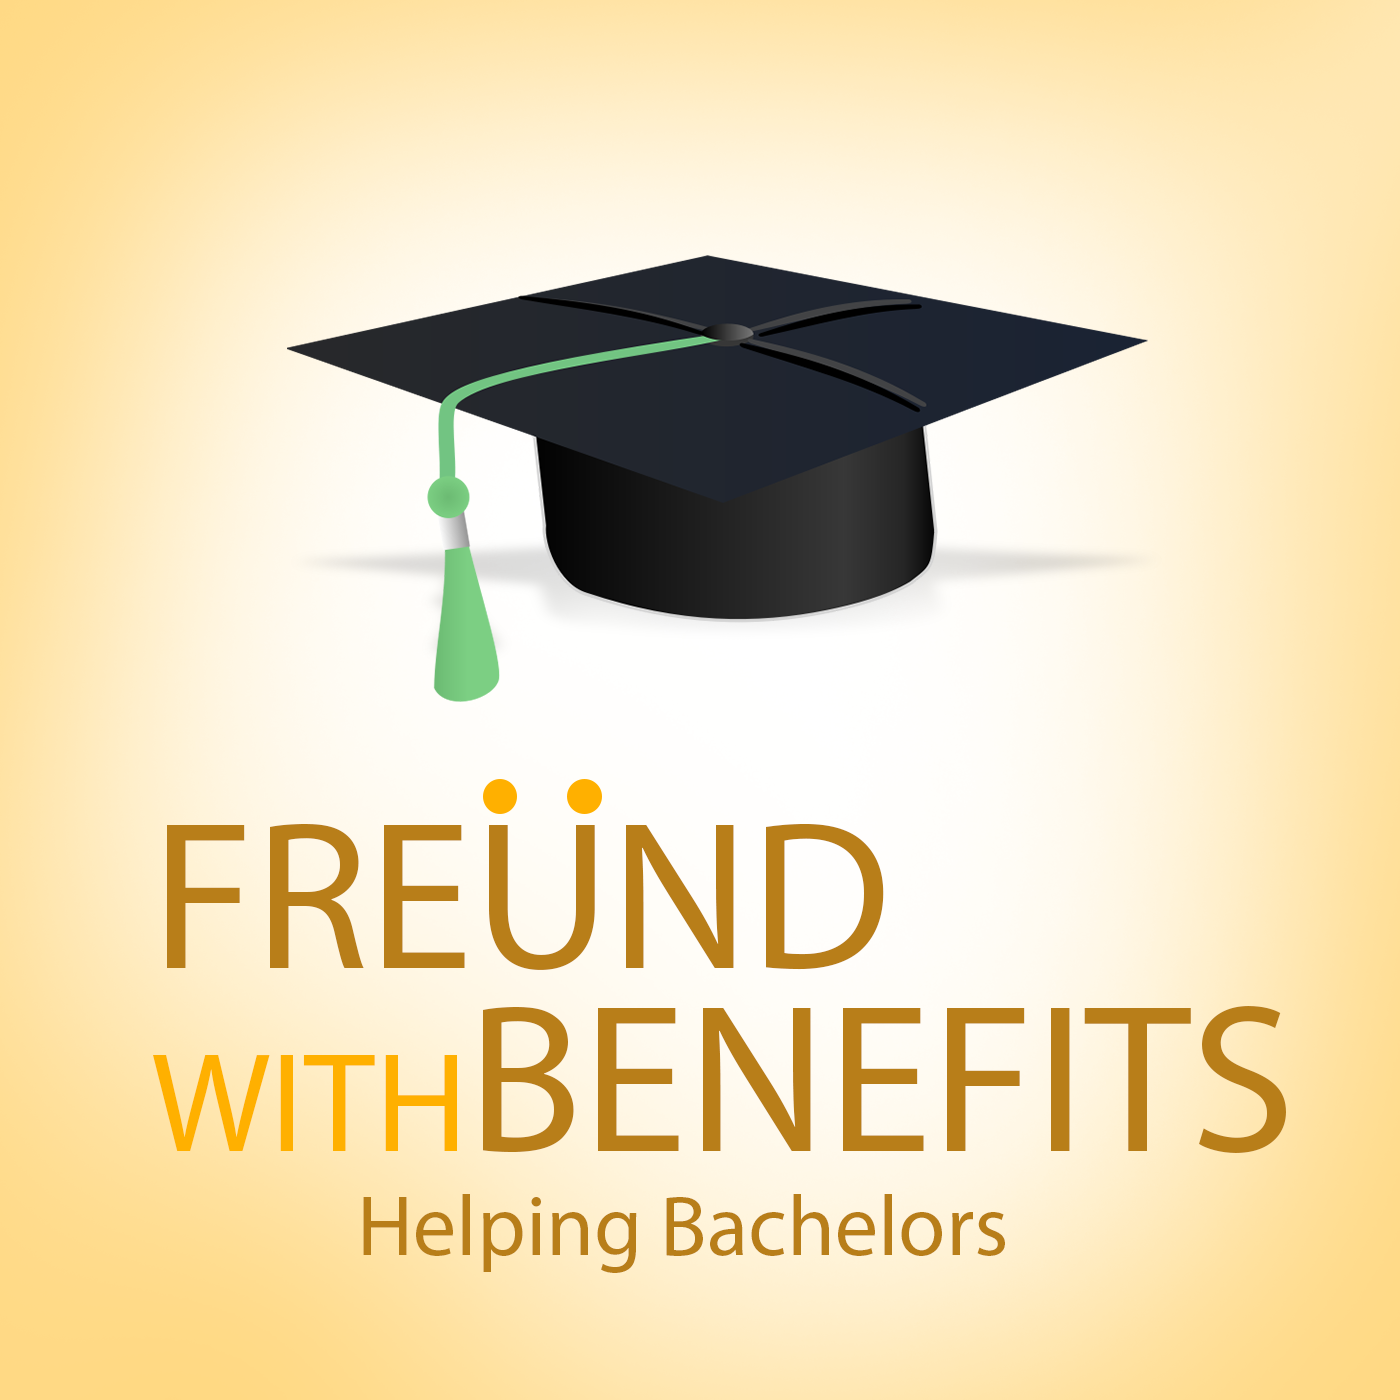 Freund with Benefits: Helping Bachelors